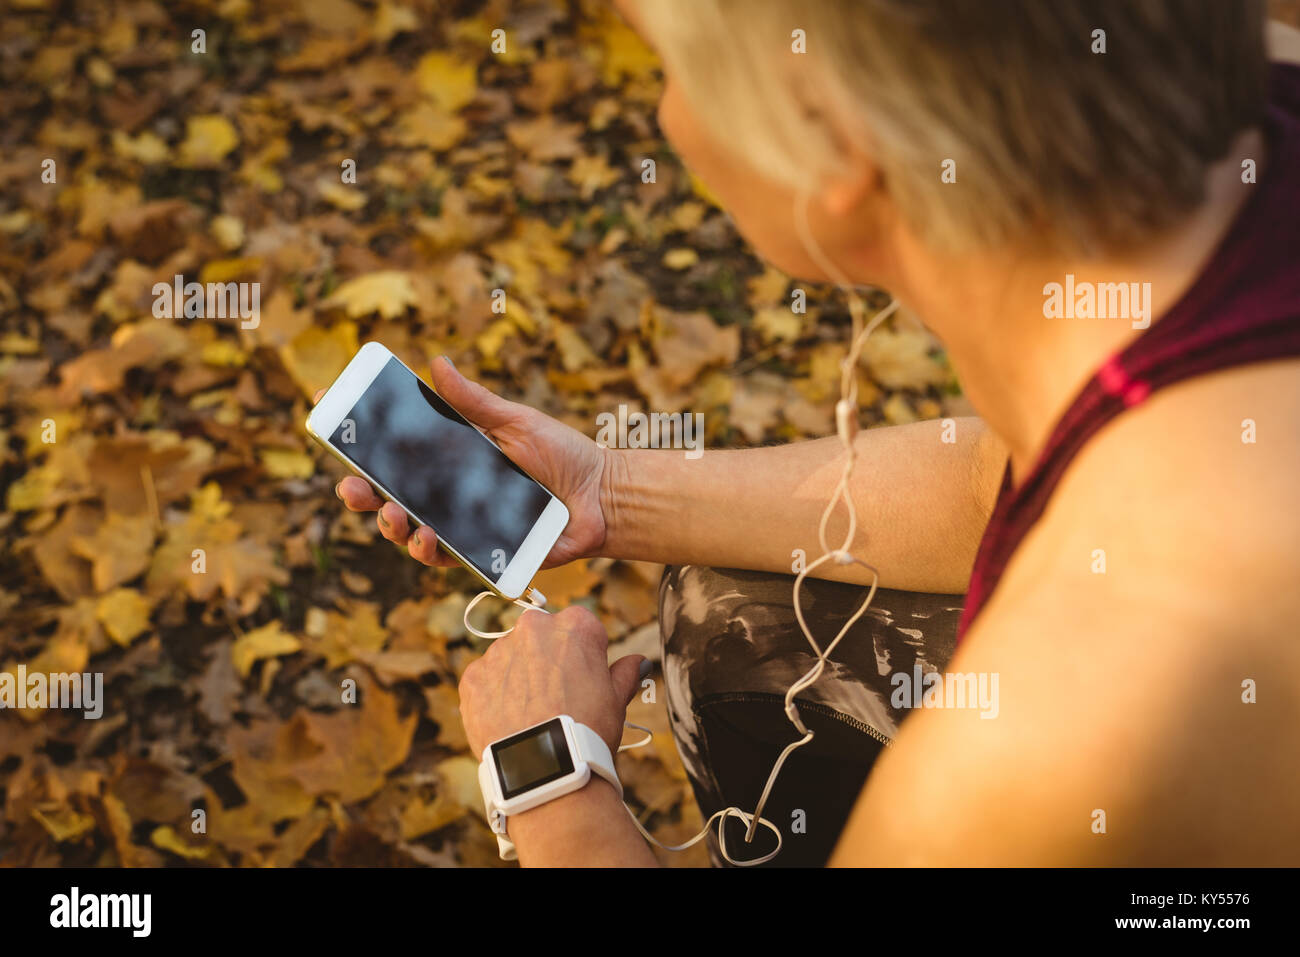 Senior woman listening to music in the park Photo Stock